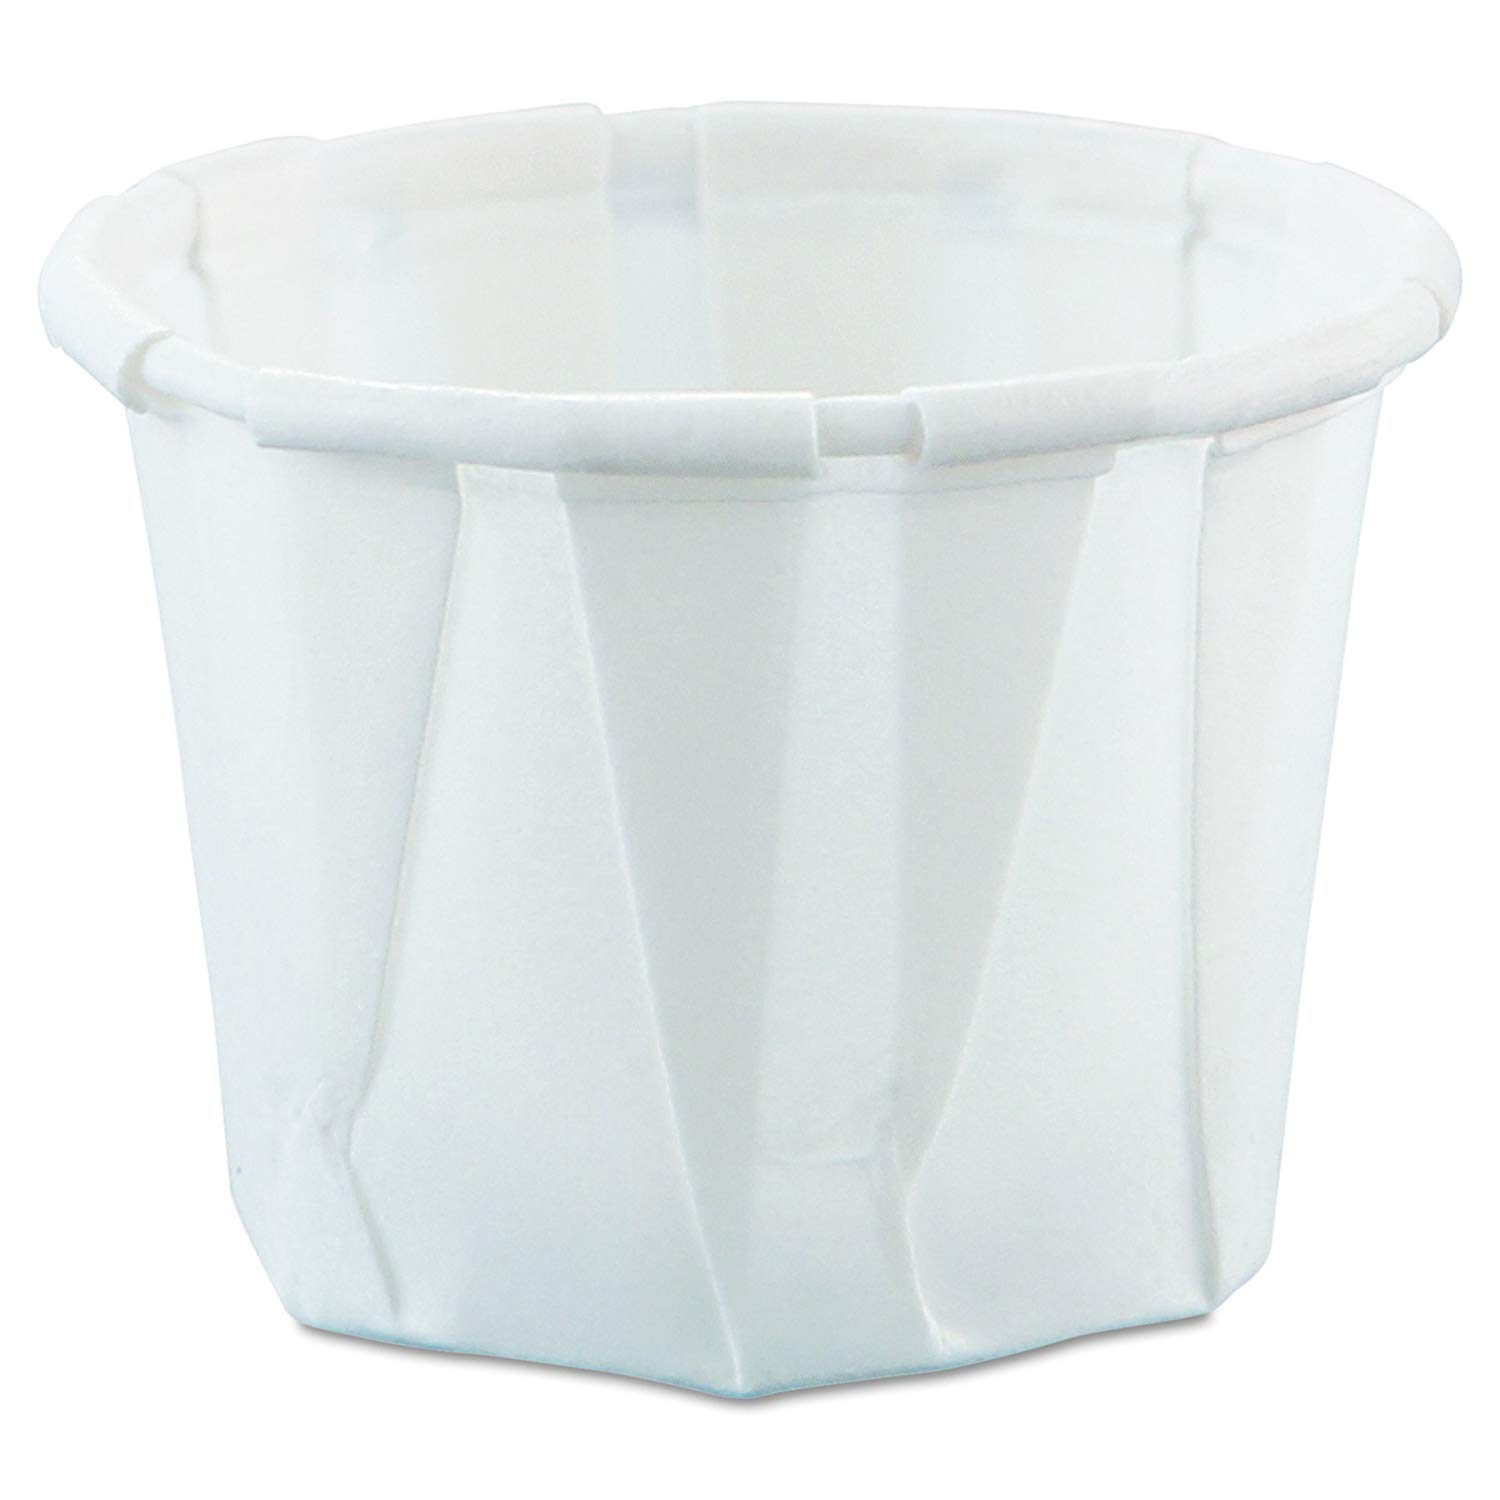 Solo 0.5 oz Treated Paper Souffle Portion Cups for Measuring, Medicine, Samples, Jello Shots (Pack of 250)